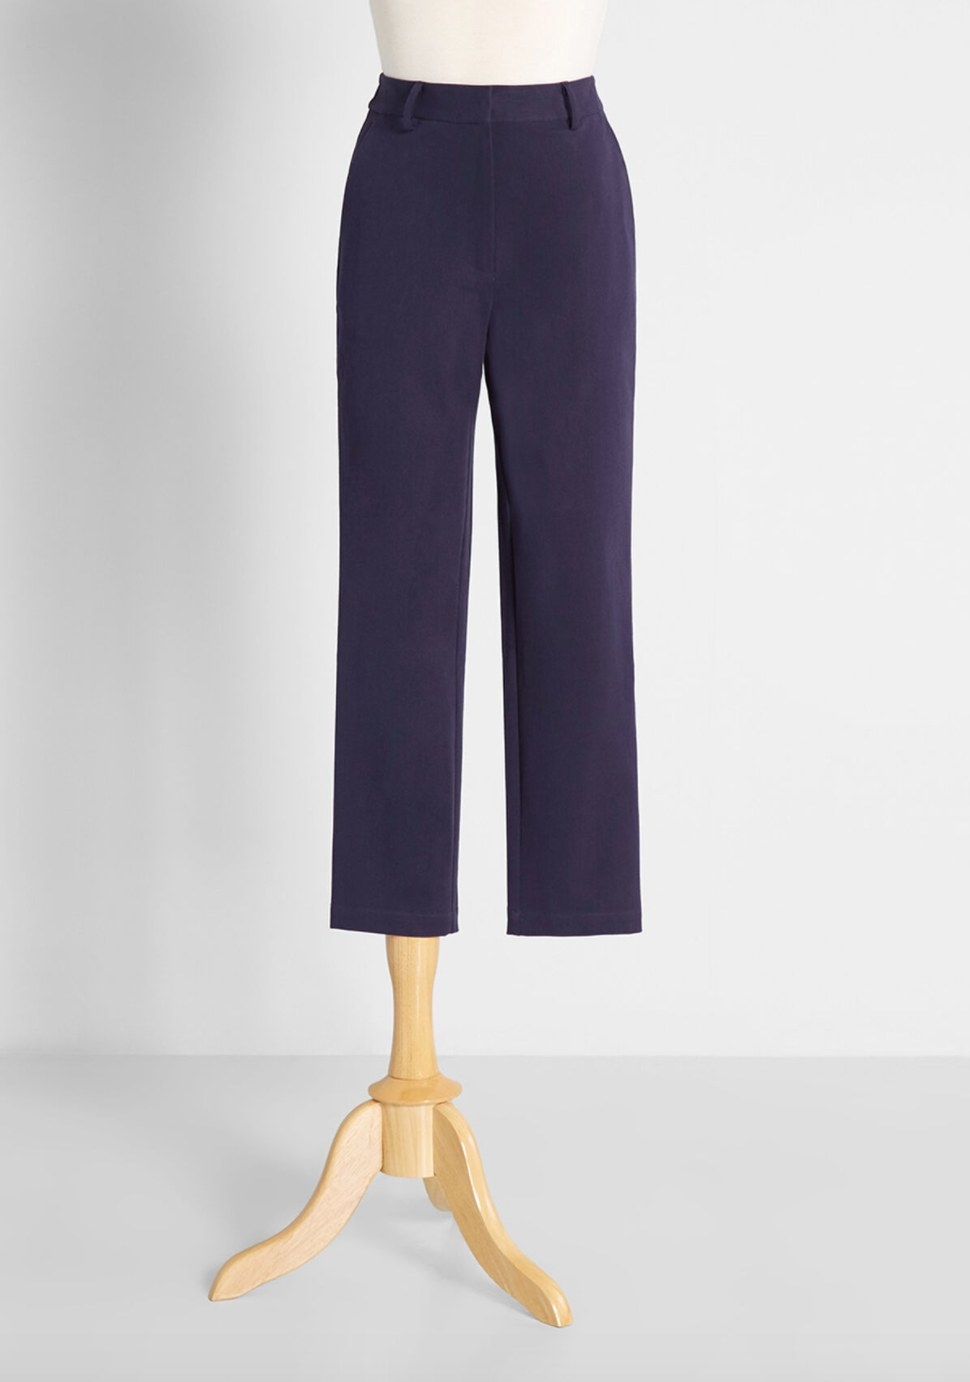 The pair of pants in navy